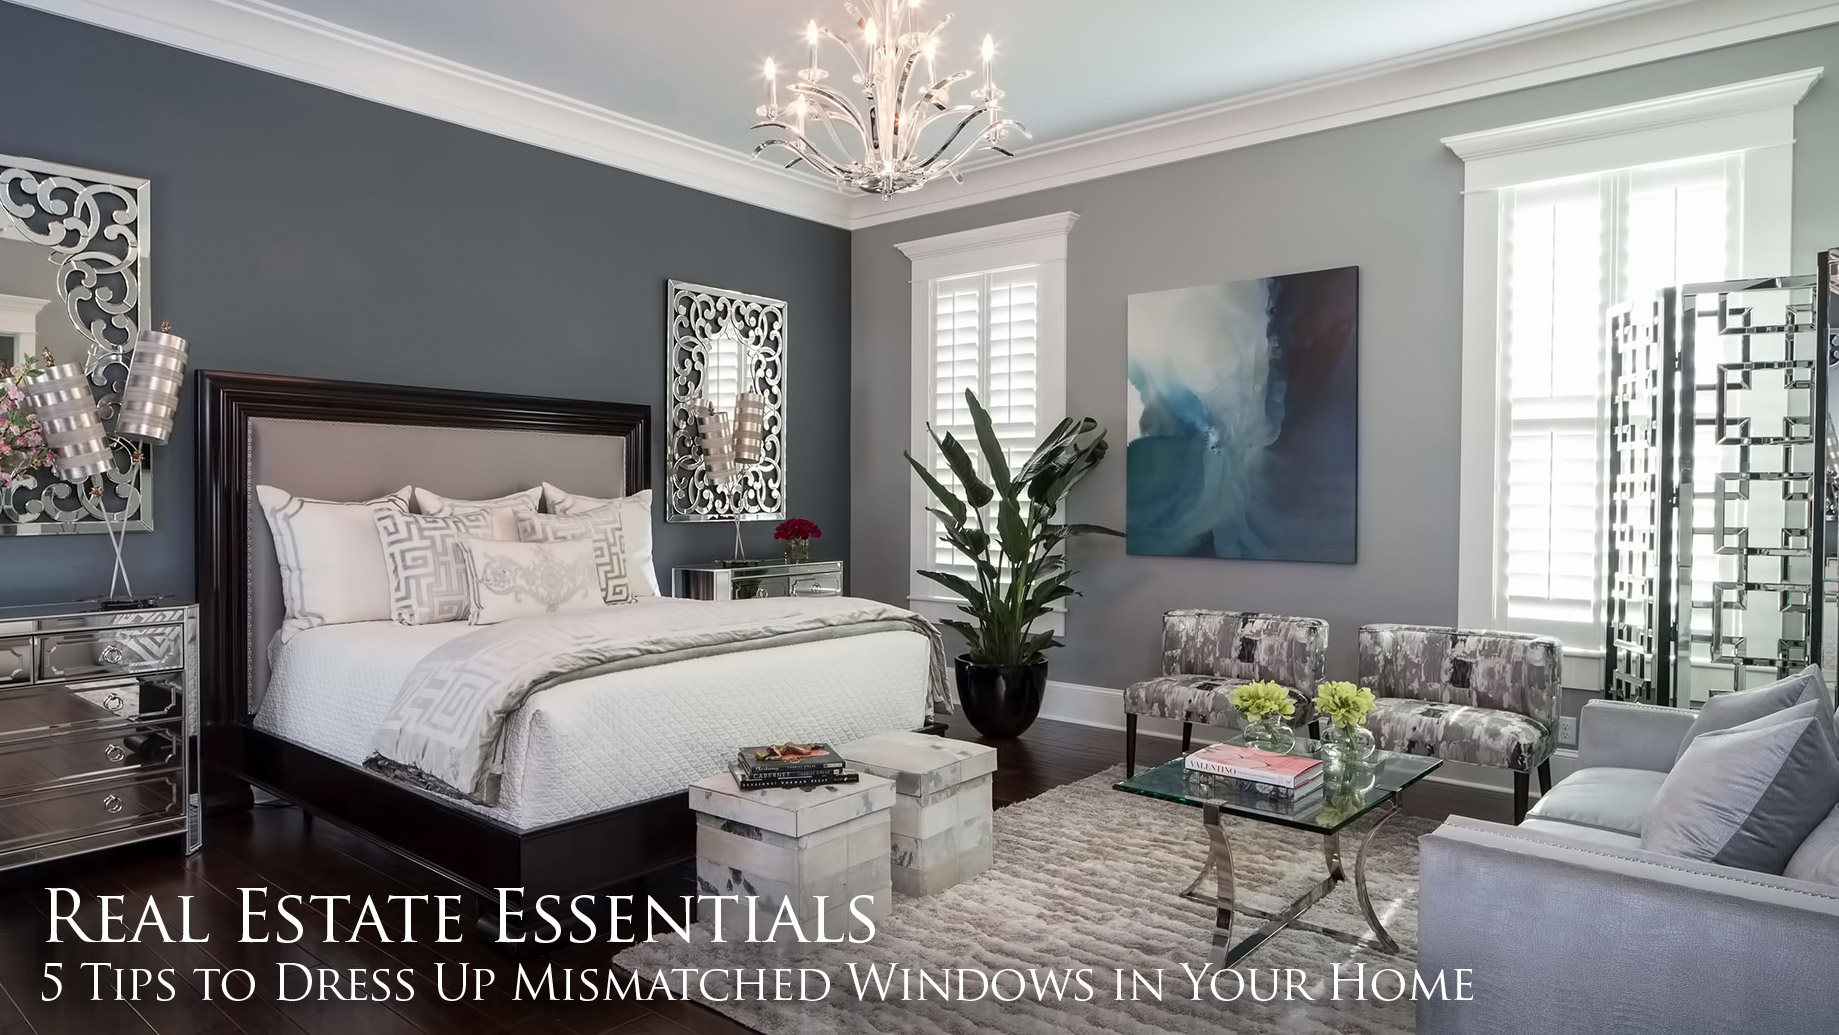 Real Estate Essentials - 5 Tips to Dress Up Mismatched Windows in Your Home